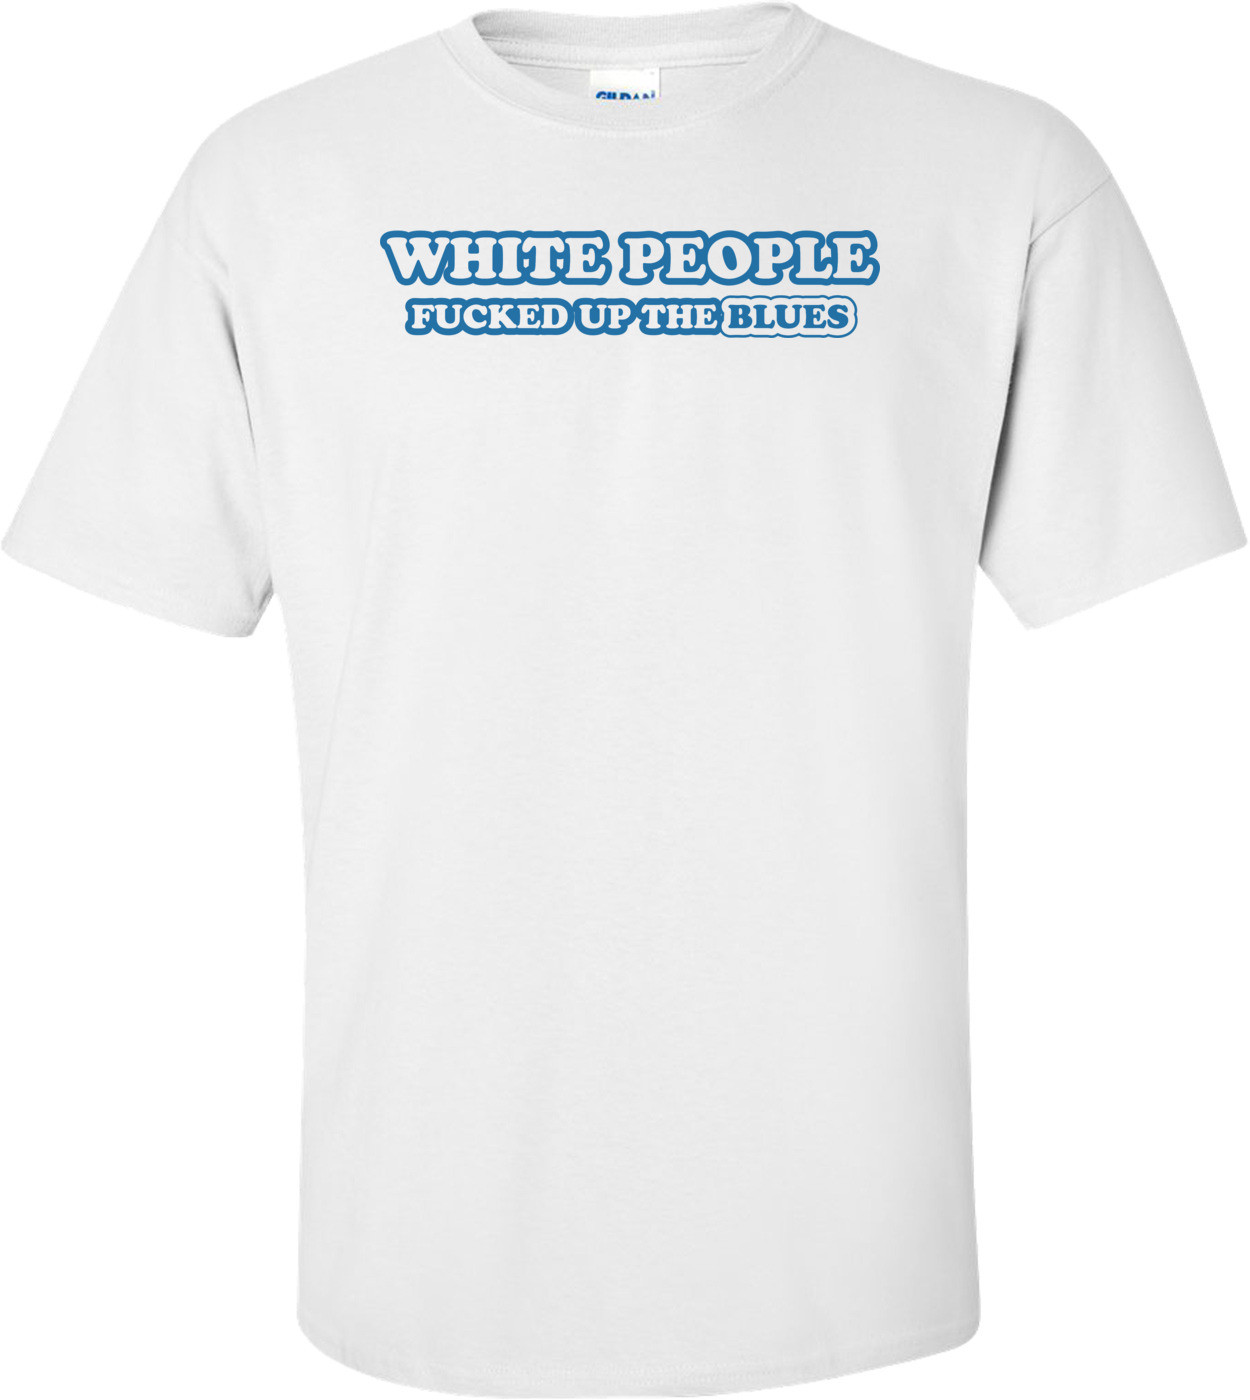 White People Fucked Up The Blues T-shirt